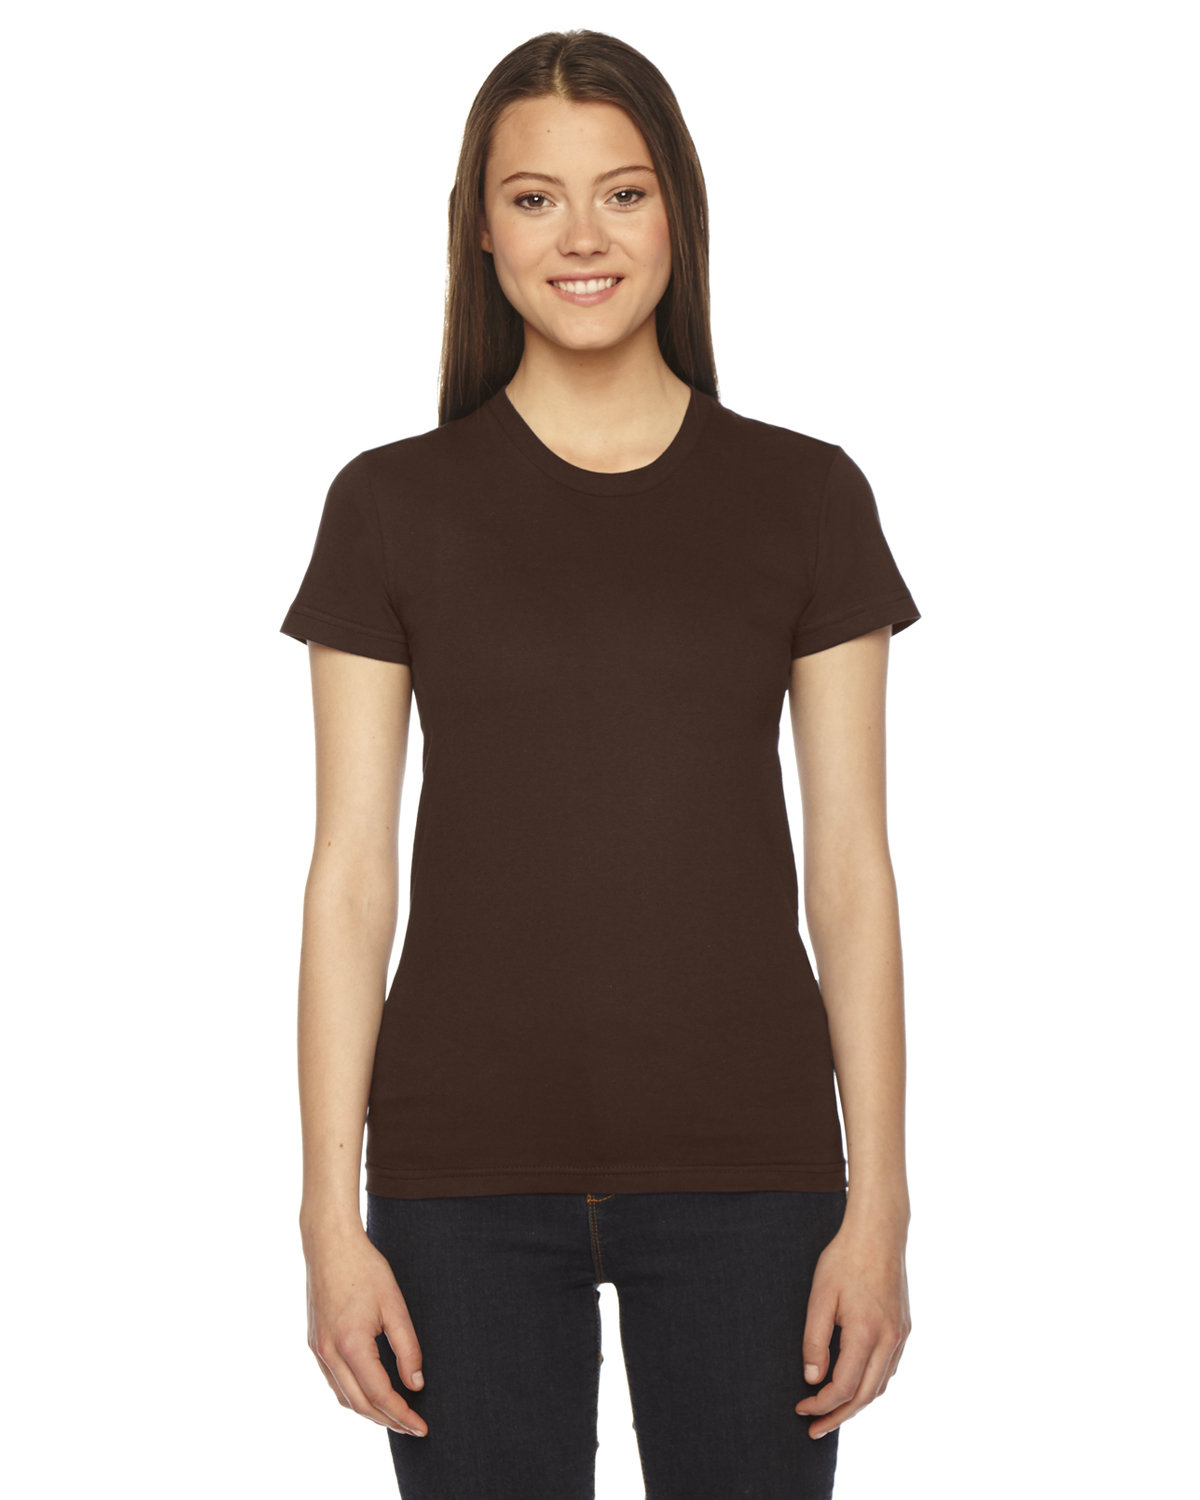 American Apparel Ladies' Fine Jersey Short-Sleeve T-Shirt BROWN